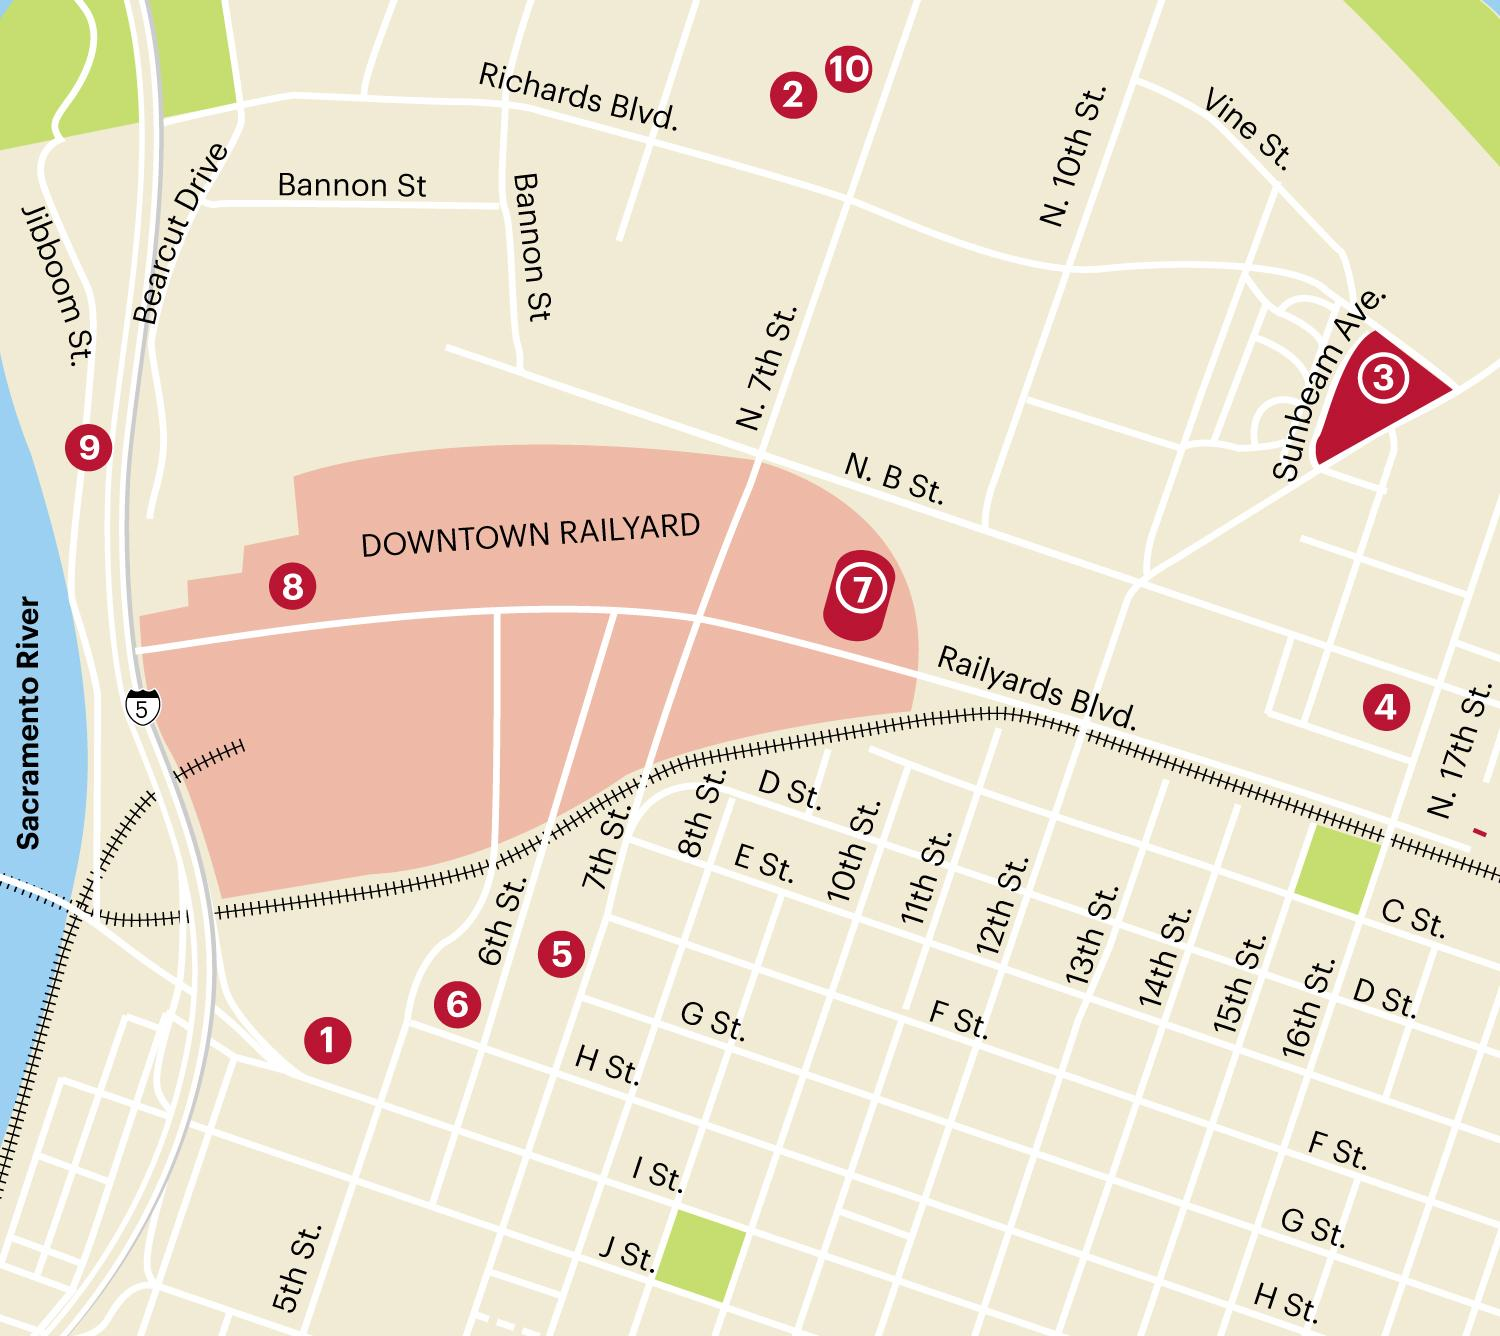 Cheap Apartments Near Journal Square: Redefining The Core 2016: Railyard/Richards Blvd. Projects